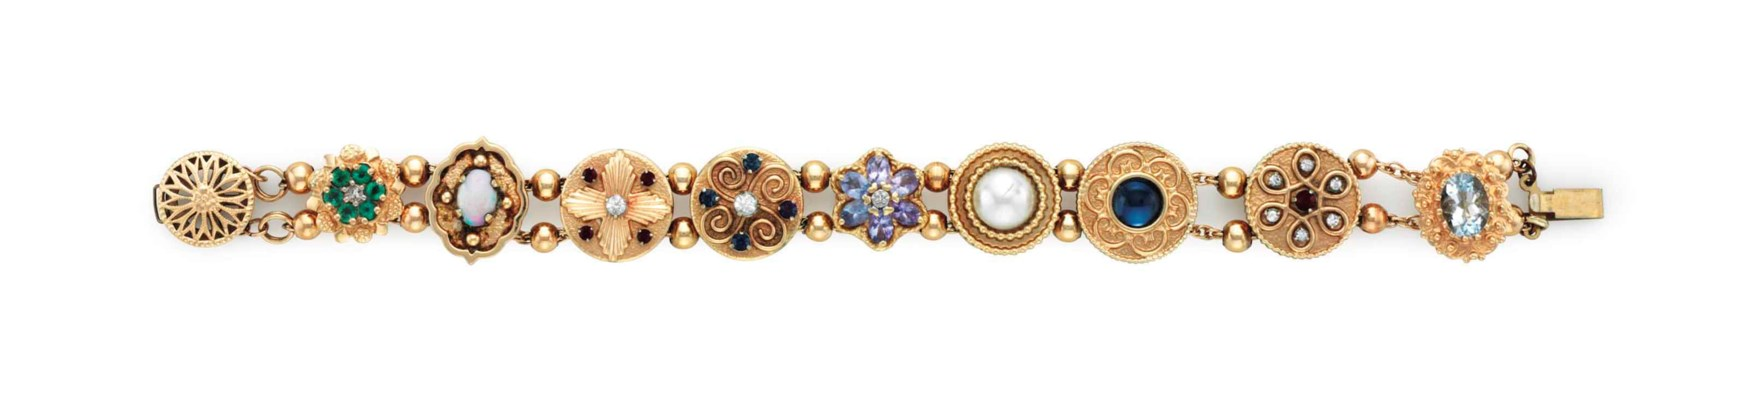 A 14K YELLOW GOLD AND PRECIOUS